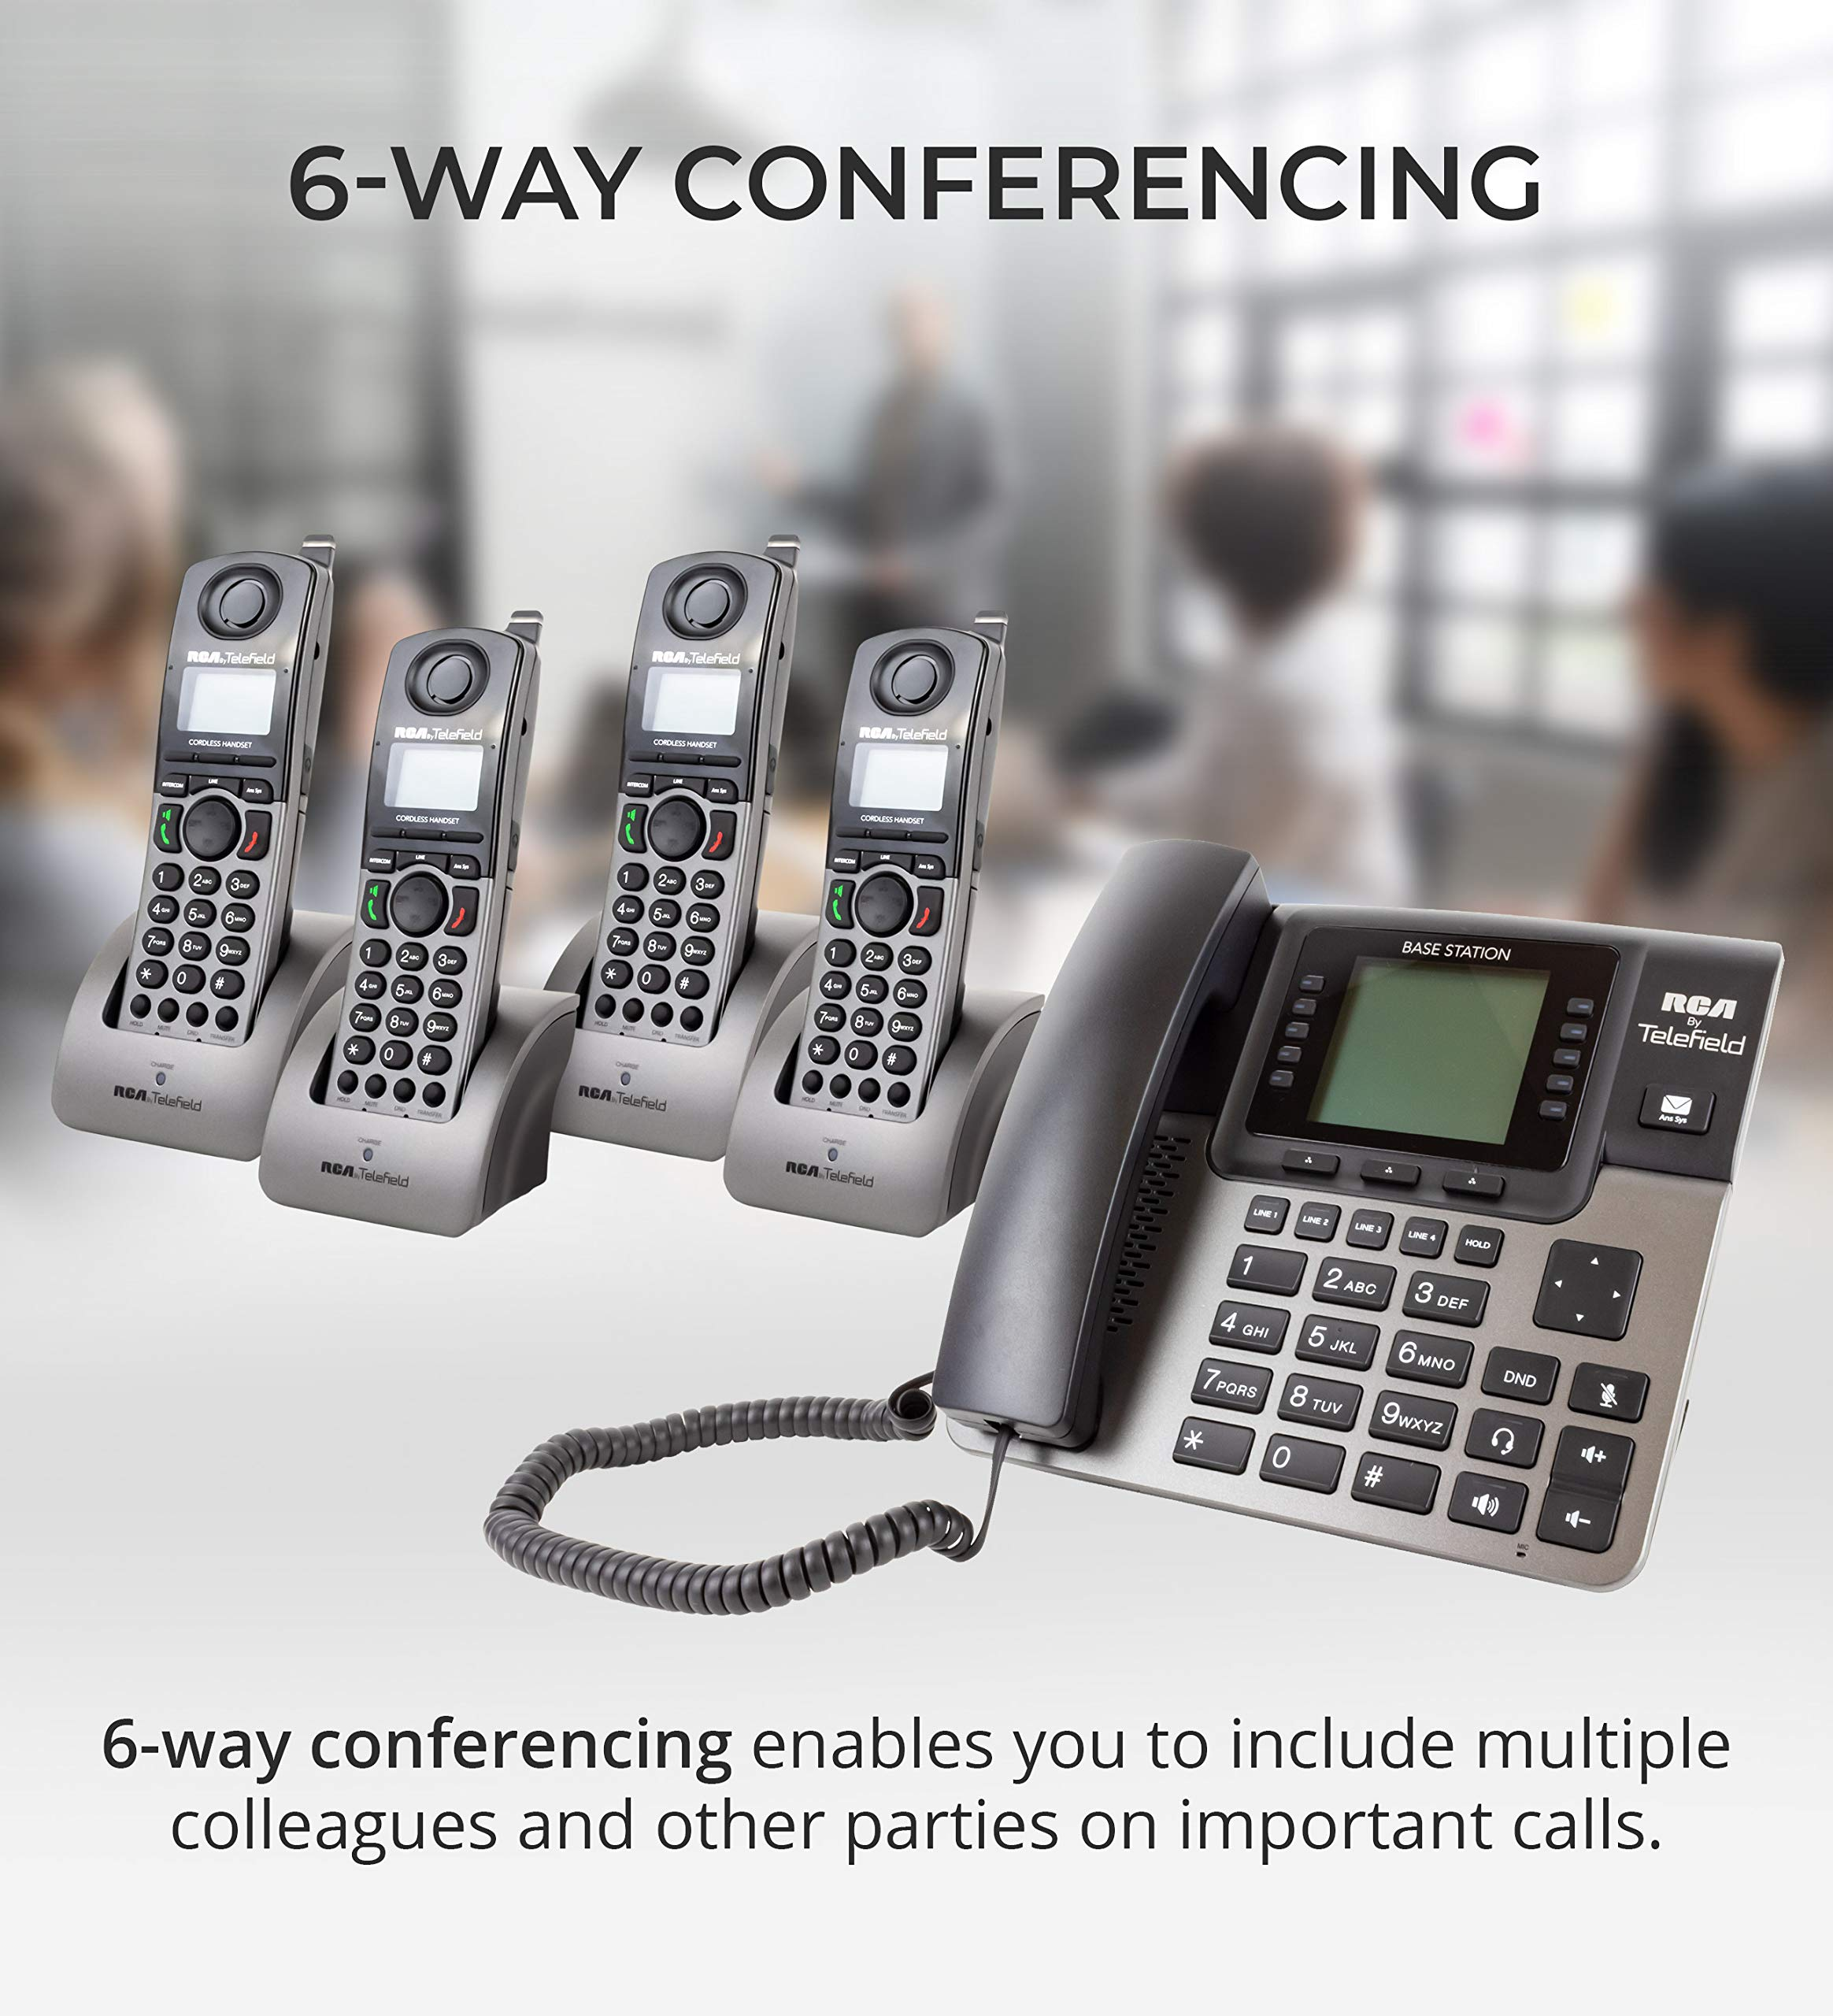 RCA U1000 Unison 4-Line Expandable Phone System - Full-Duplex Speakerphone Bundle with RCA U1200 DECT 6.0 Cordless Accessory Handsets (4-Pack) and 6 Blucoil AAA Batteries by blucoil (Image #4)